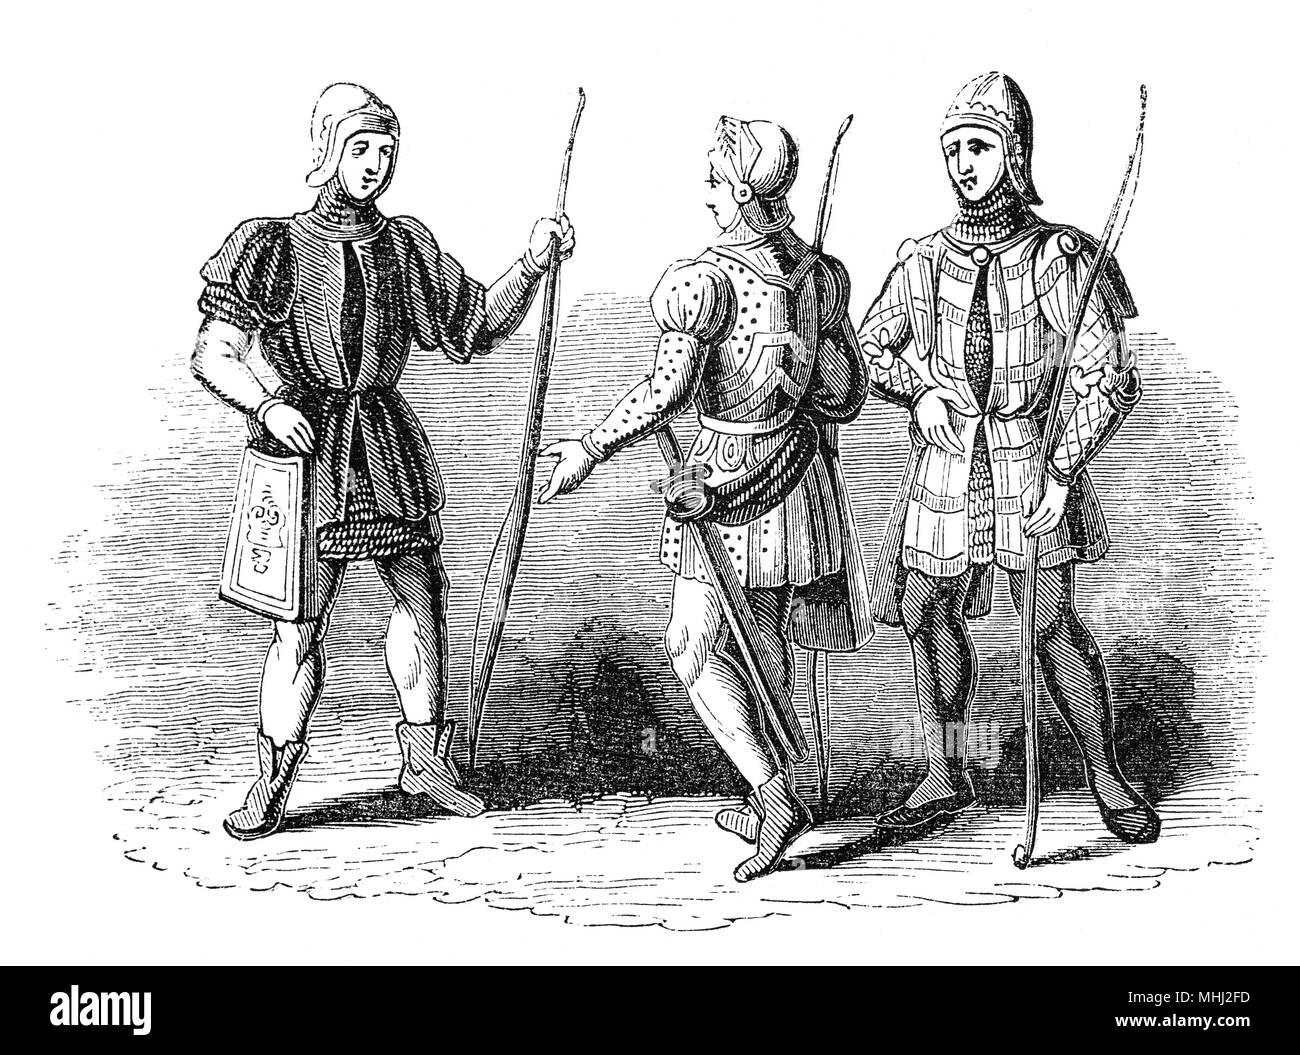 Archers with English longbows, a powerful medieval weapon about 6 ft (1.8 m) long used by the English in medieval warfare. The English use of longbows was particularly effective against the French during the Hundred Years' War, particularly at the start of the war in the battles of Sluys (1340), Crécy (1346), and Poitiers (1356), and perhaps most famously at the Battle of Agincourt (1415). - Stock Image